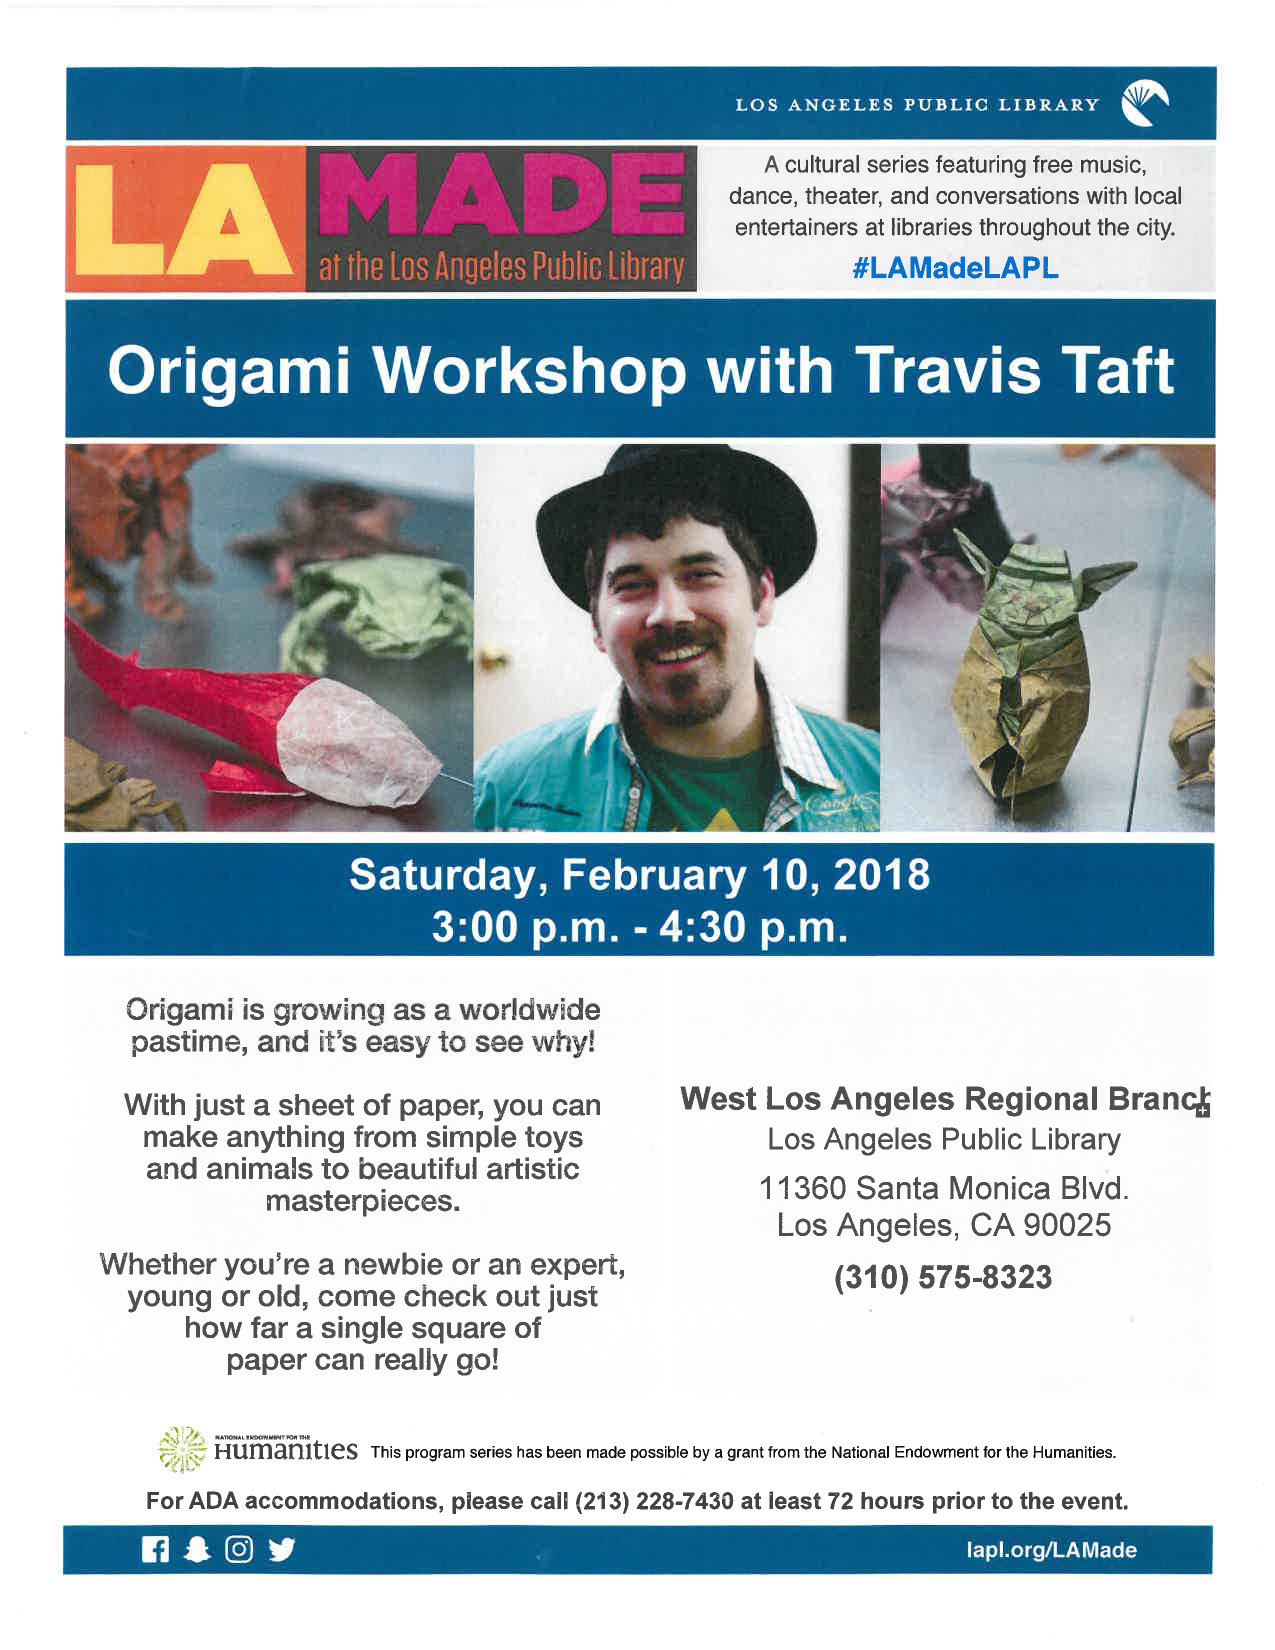 On Saturday, Feb. 10 from 3-4:30, Travis Taft will facilitate a FREE Origami Workshop at WLA Branch for an all-ages audience.